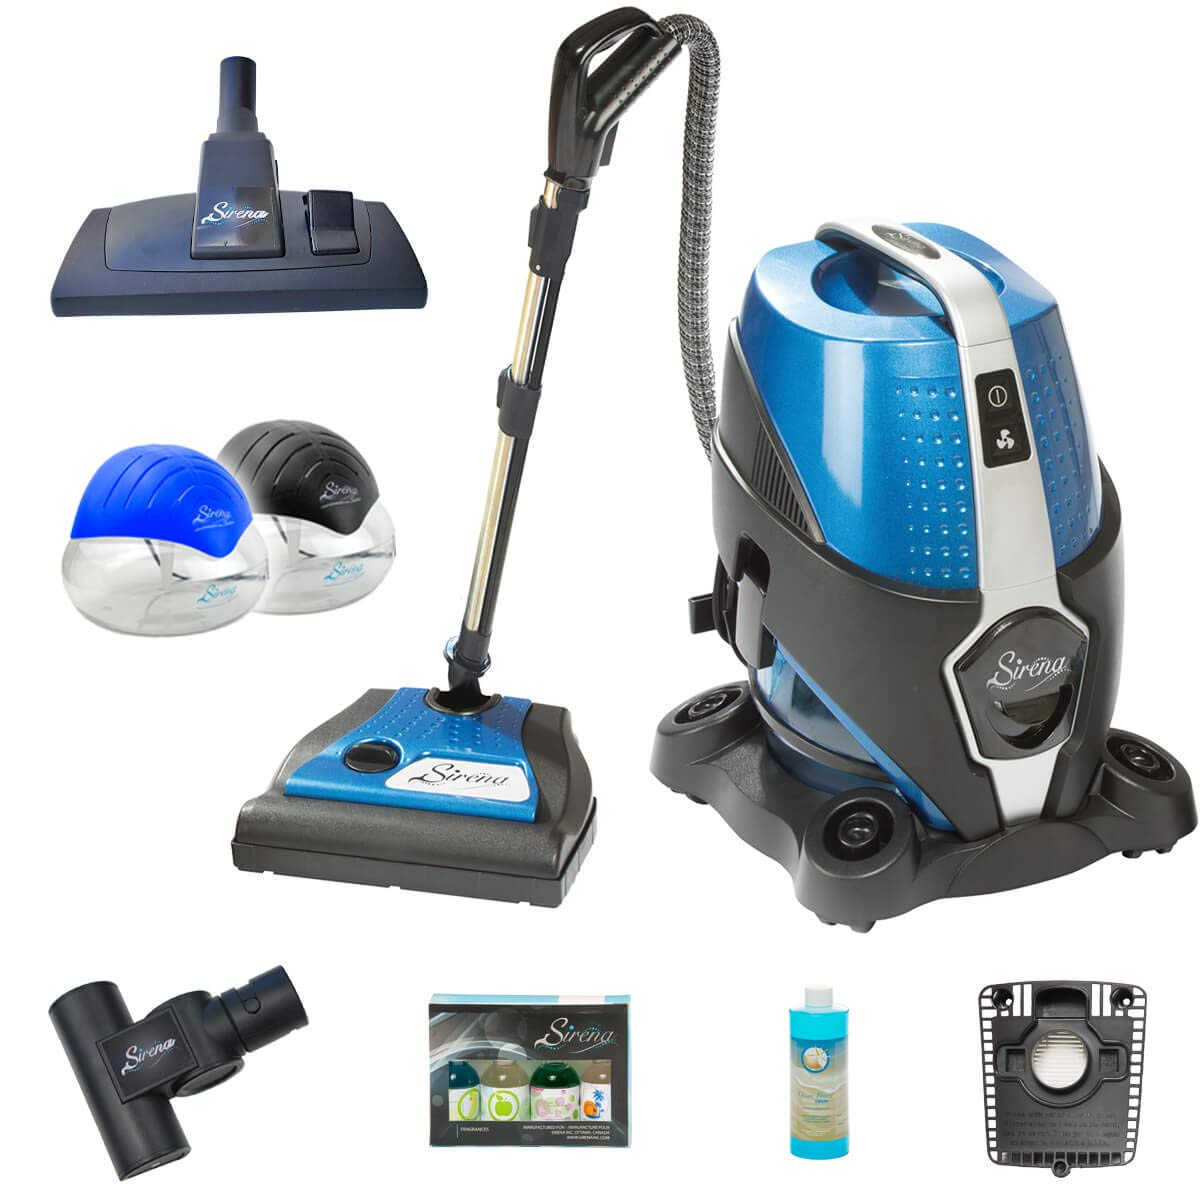 Sirena Vacuum Cleaner Premium Pack – Includes 2 Sirena Twister Air Purifiers, Sirena Turbo Brush, Ocean Breeze Deodorizer, Sirena Fragrance Pack, HEPA Filter, and Exclusive Sirena Multi-Floor Tool